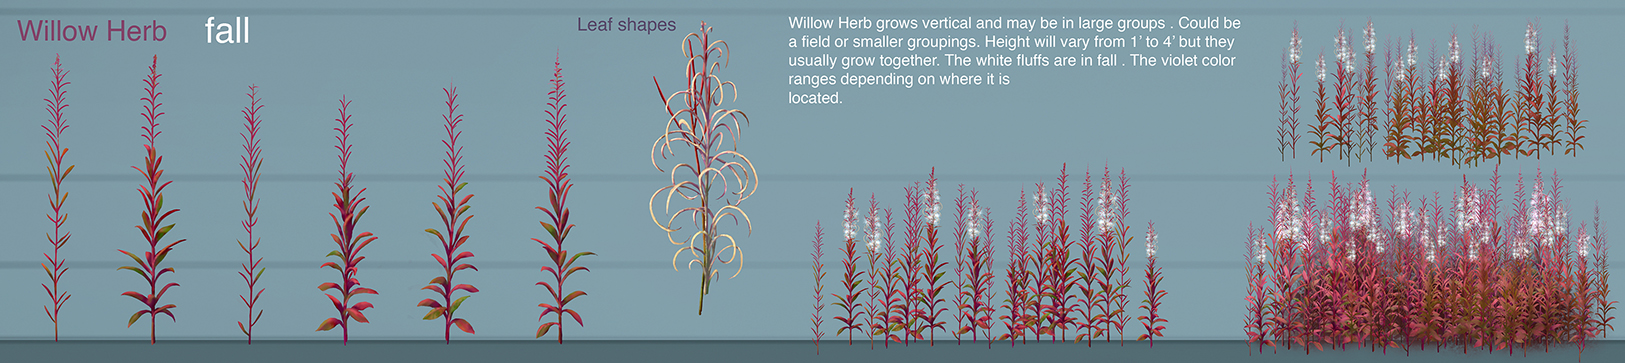 willow_herb_final_fall3_stems